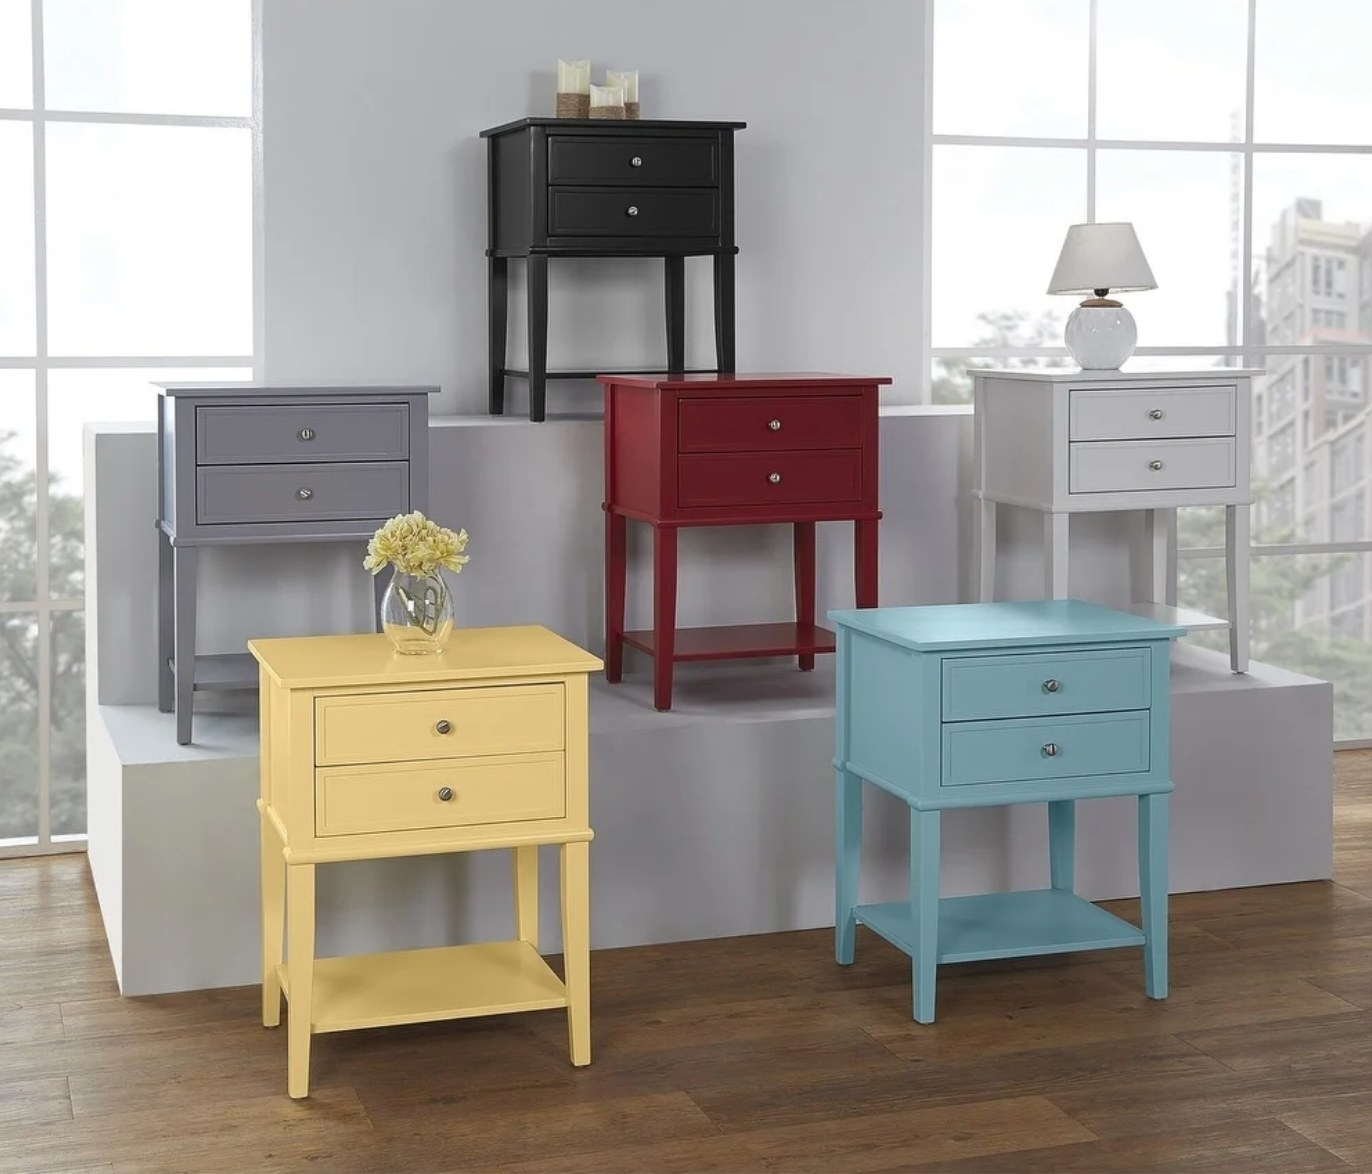 The accent tables in six colors